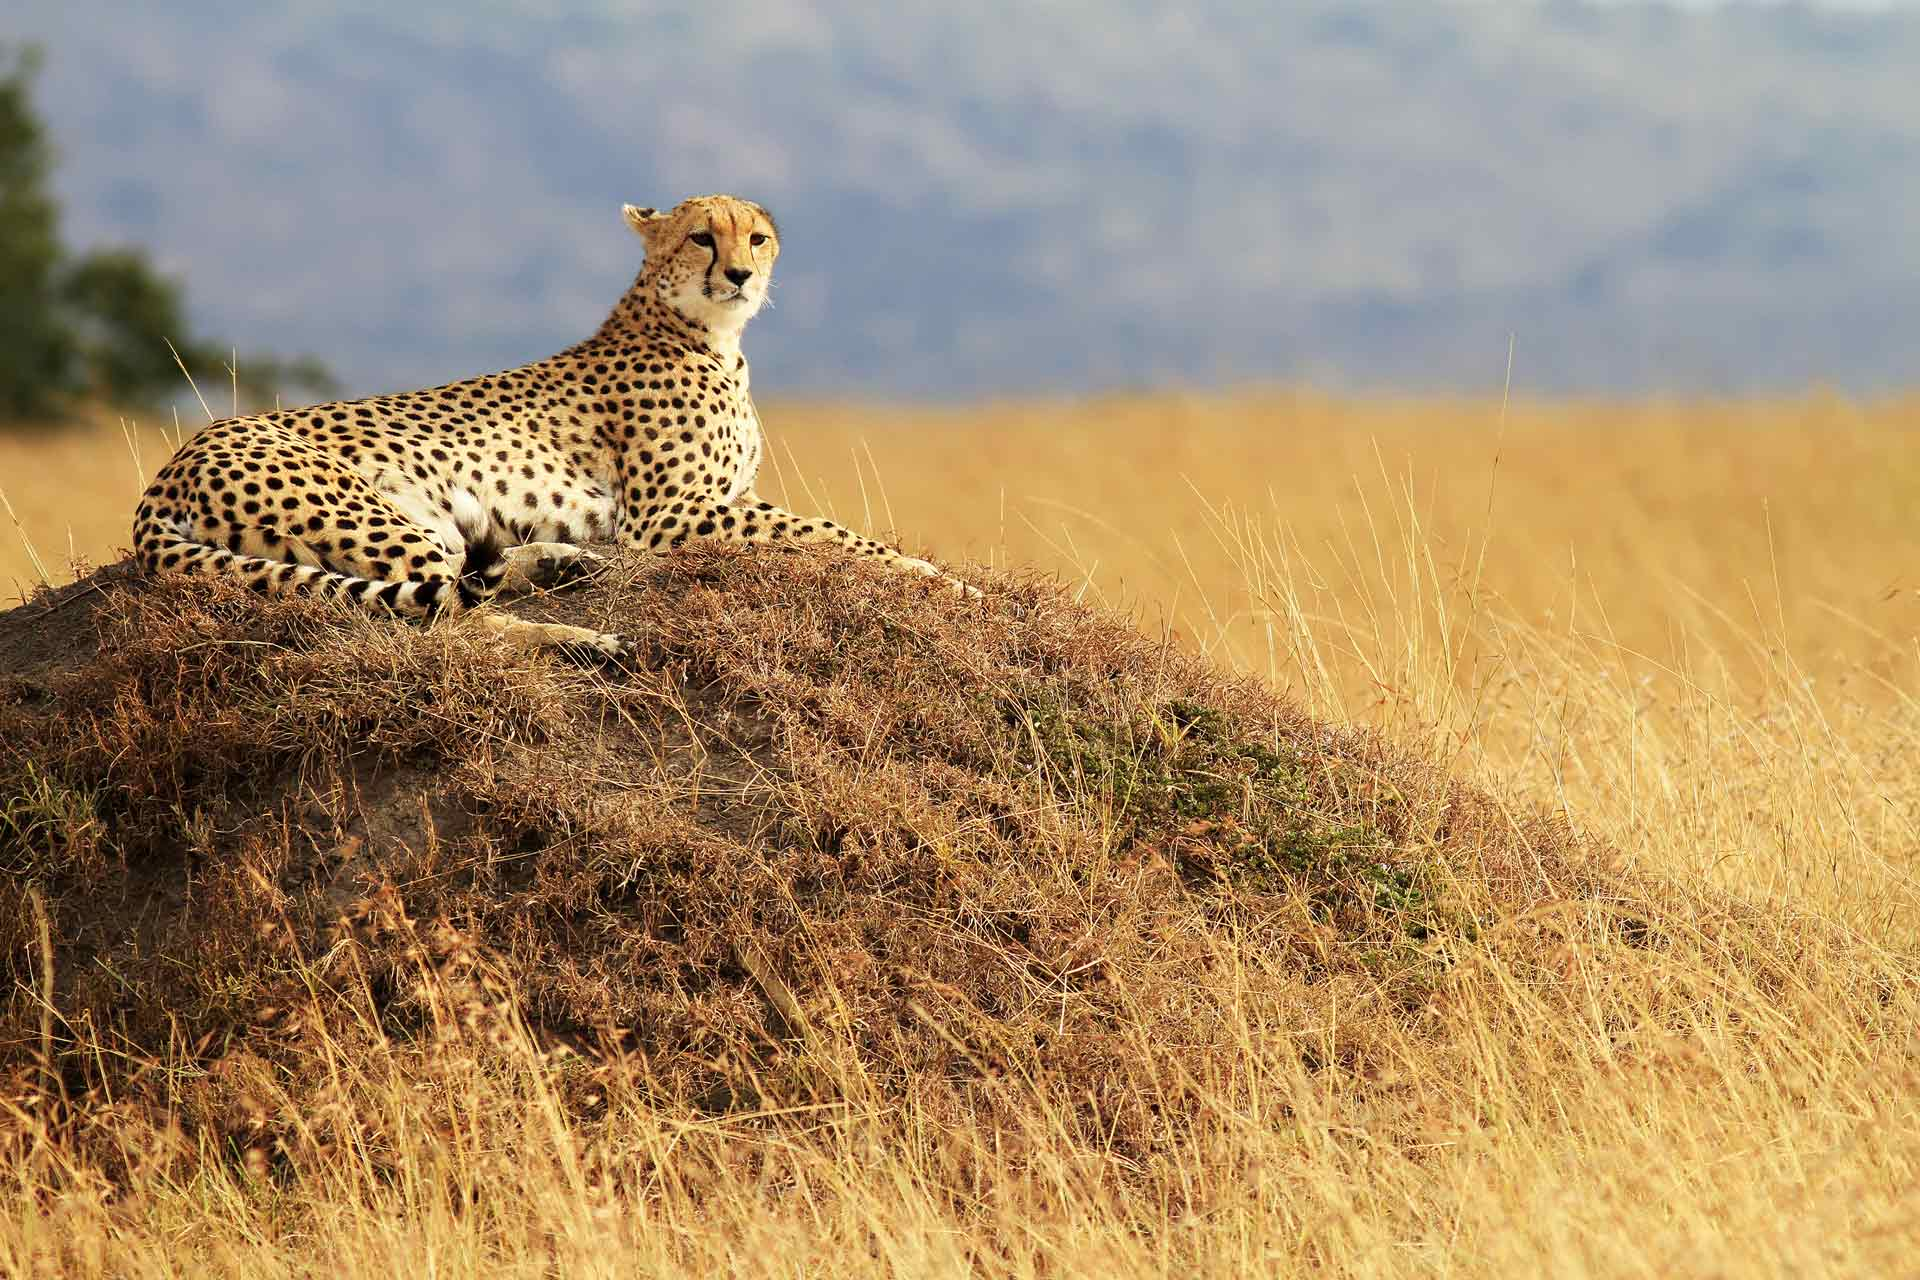 A cheetah relaxing, National Reserve in Kenya